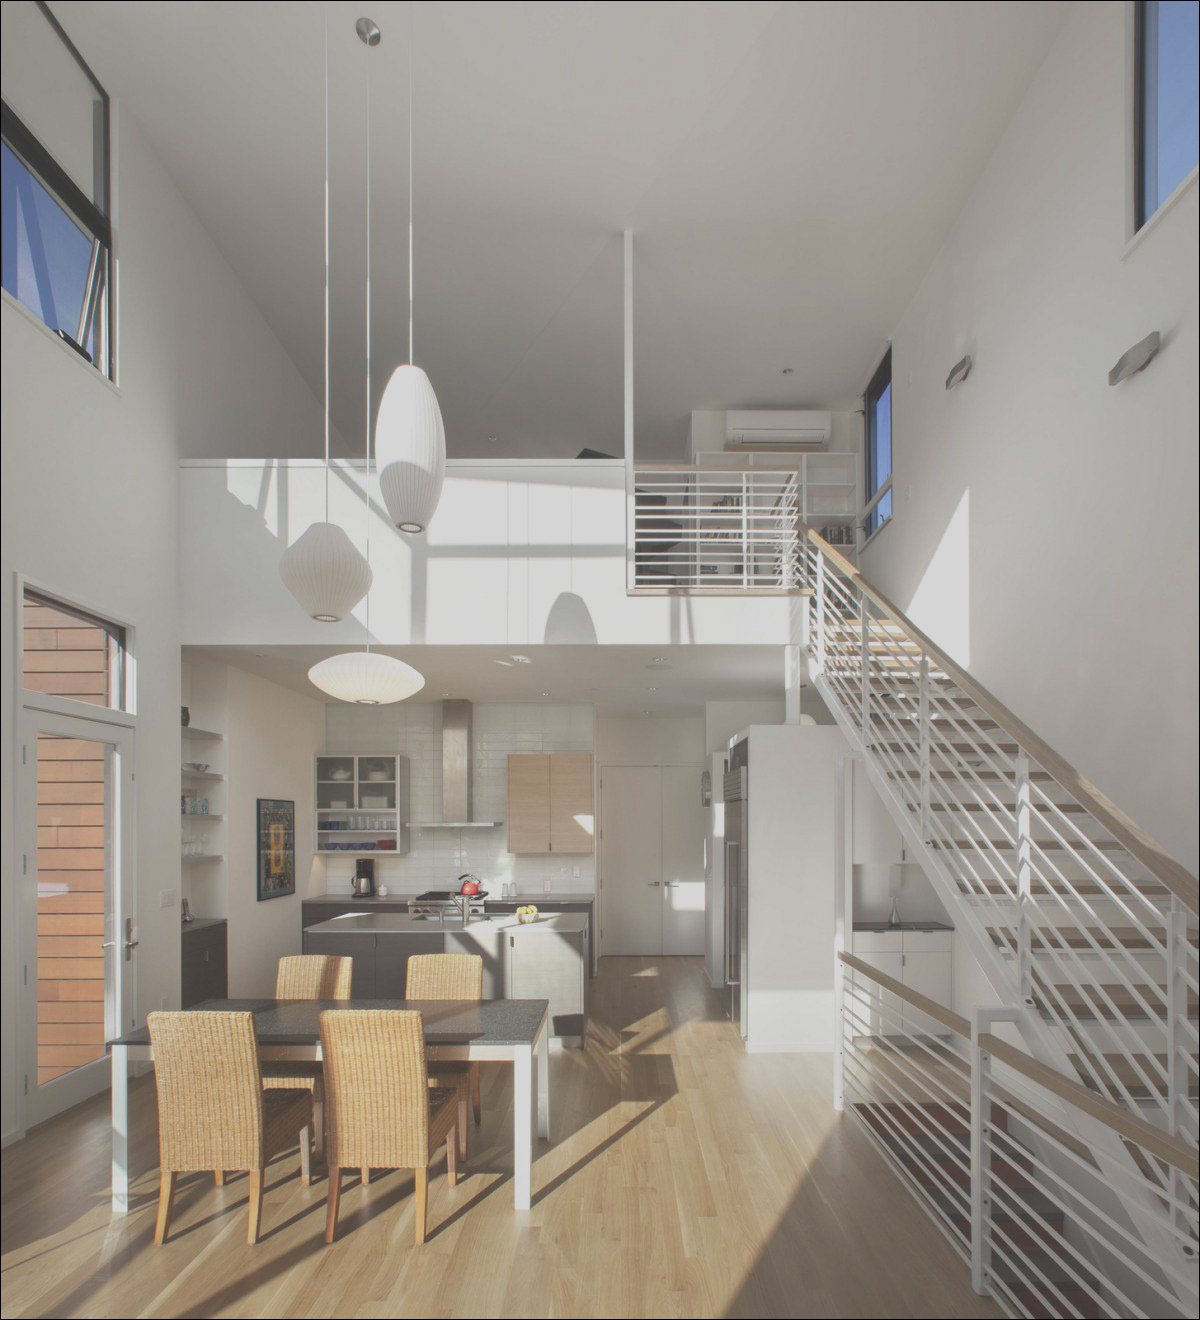 lighting dining table stairs kitchen townhomes boulder colorado